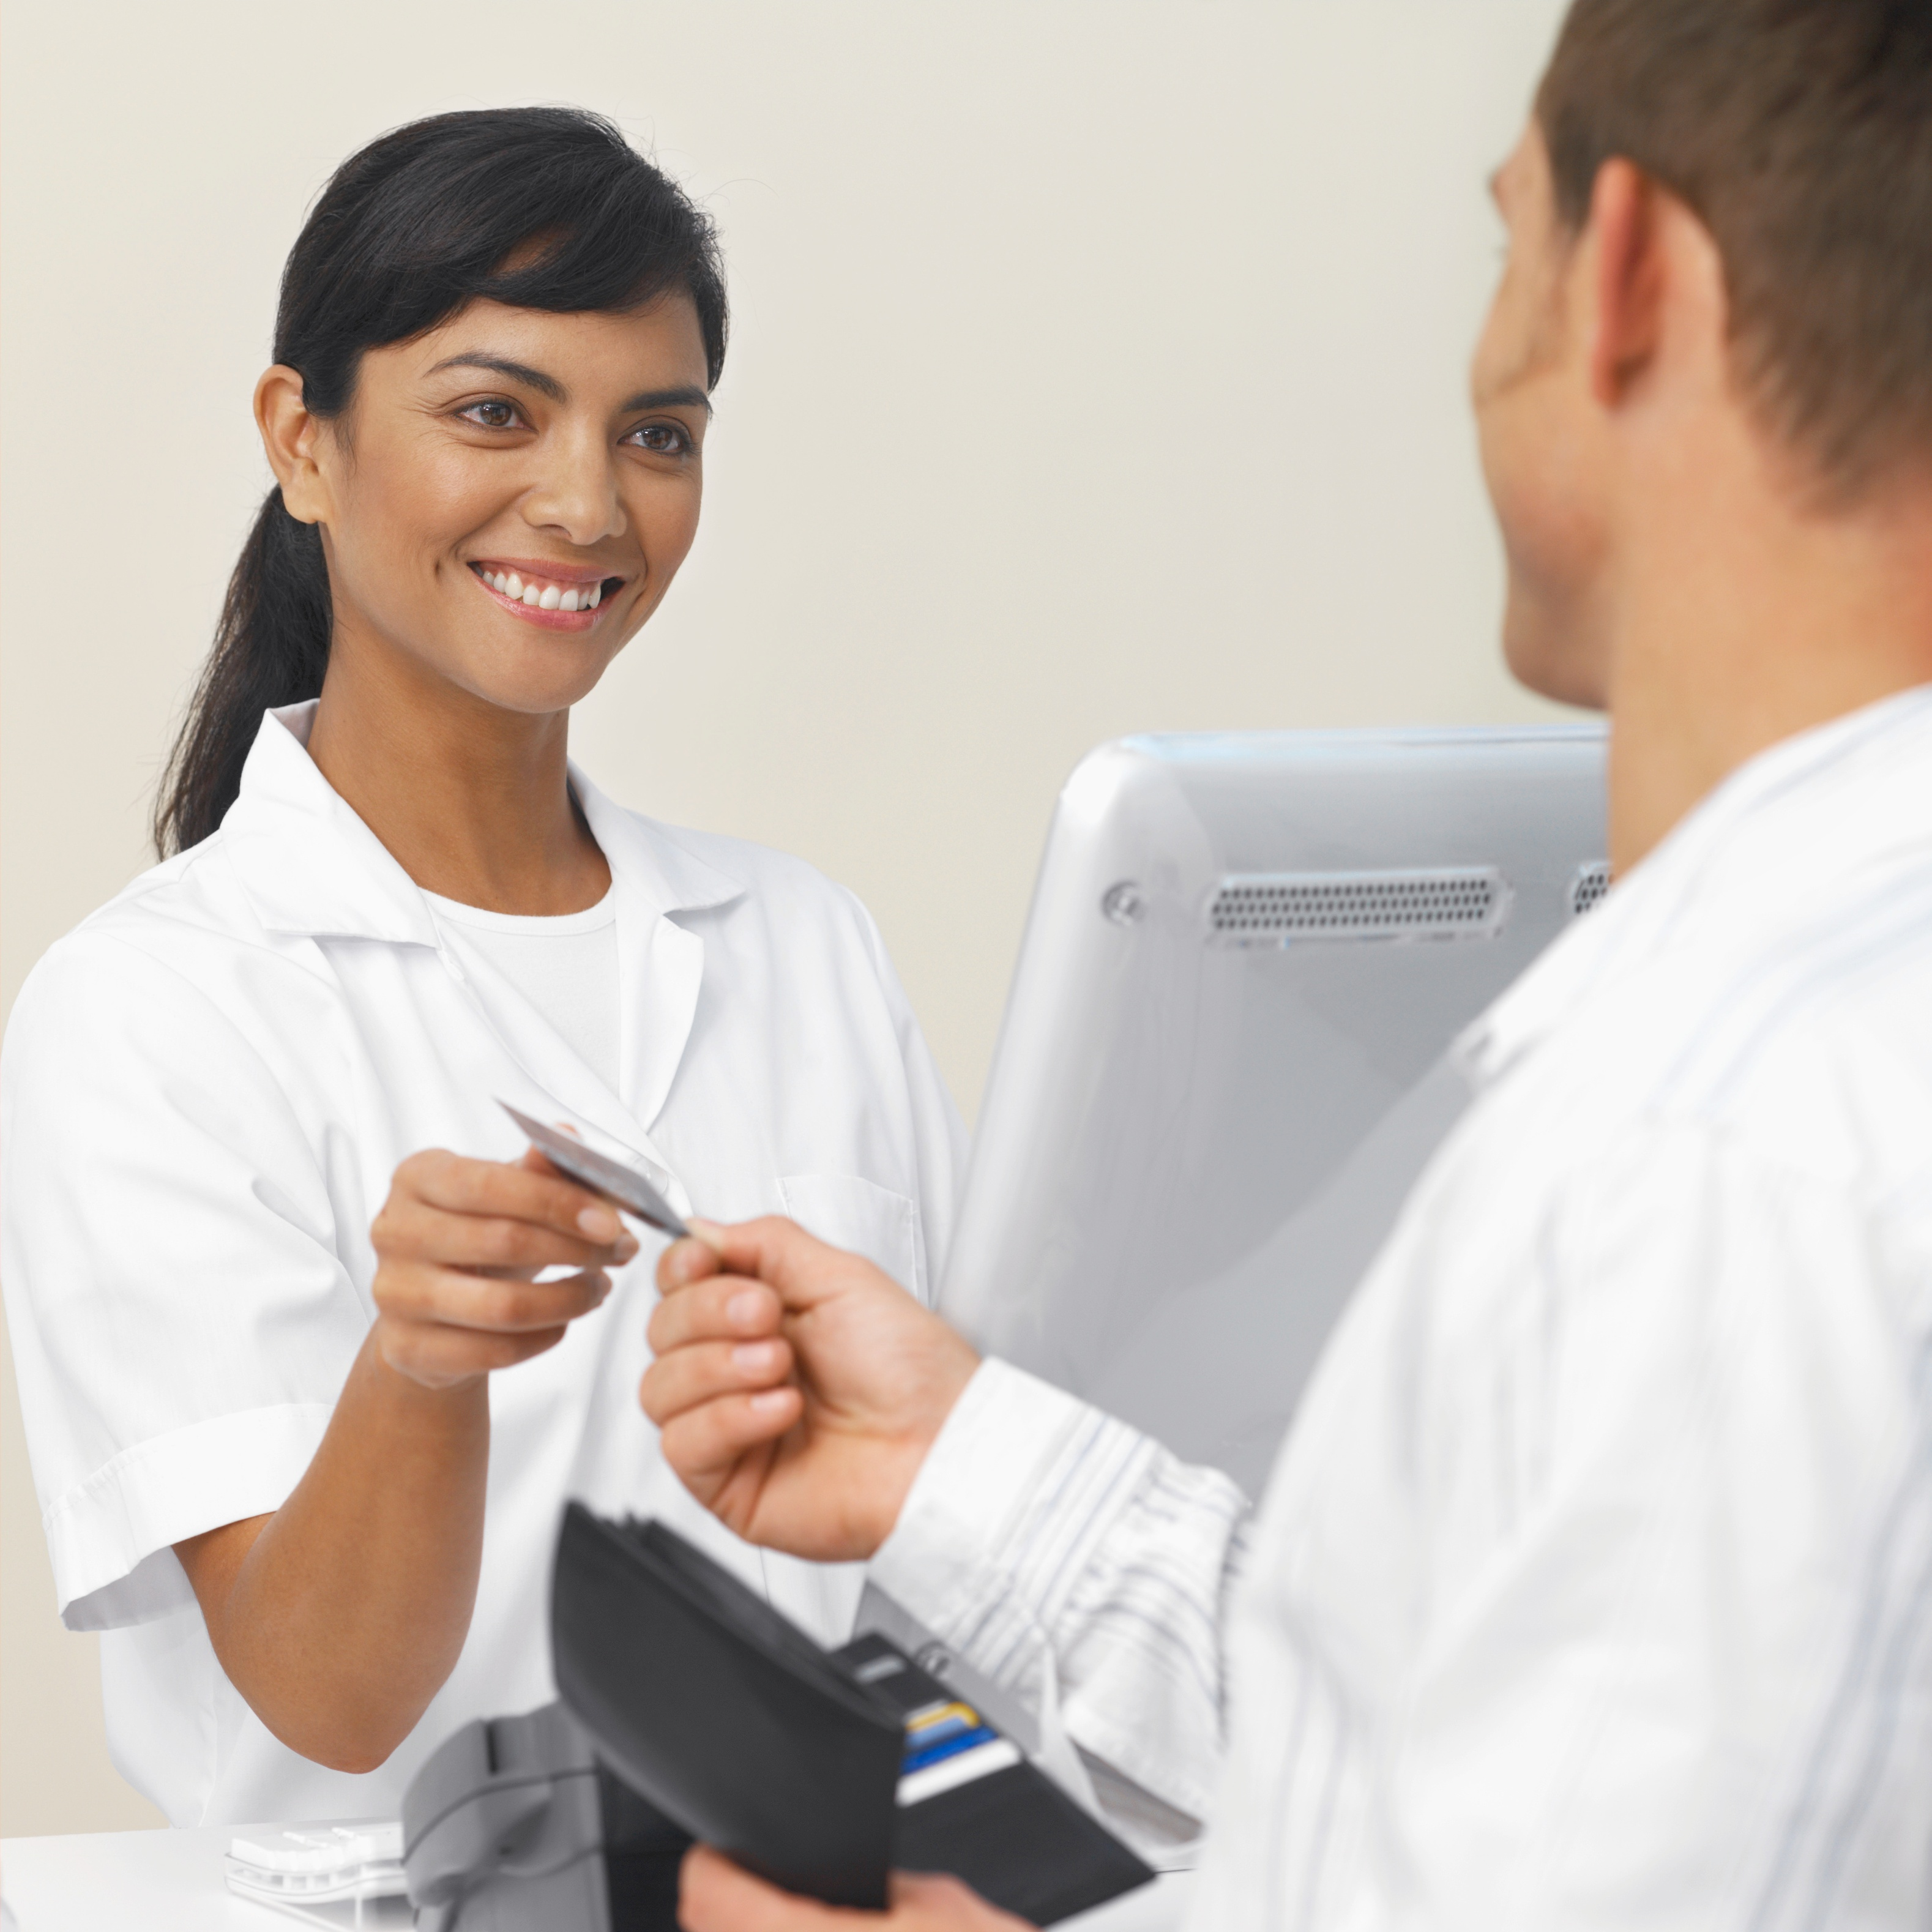 dental practice workers smiling at each other.jpg